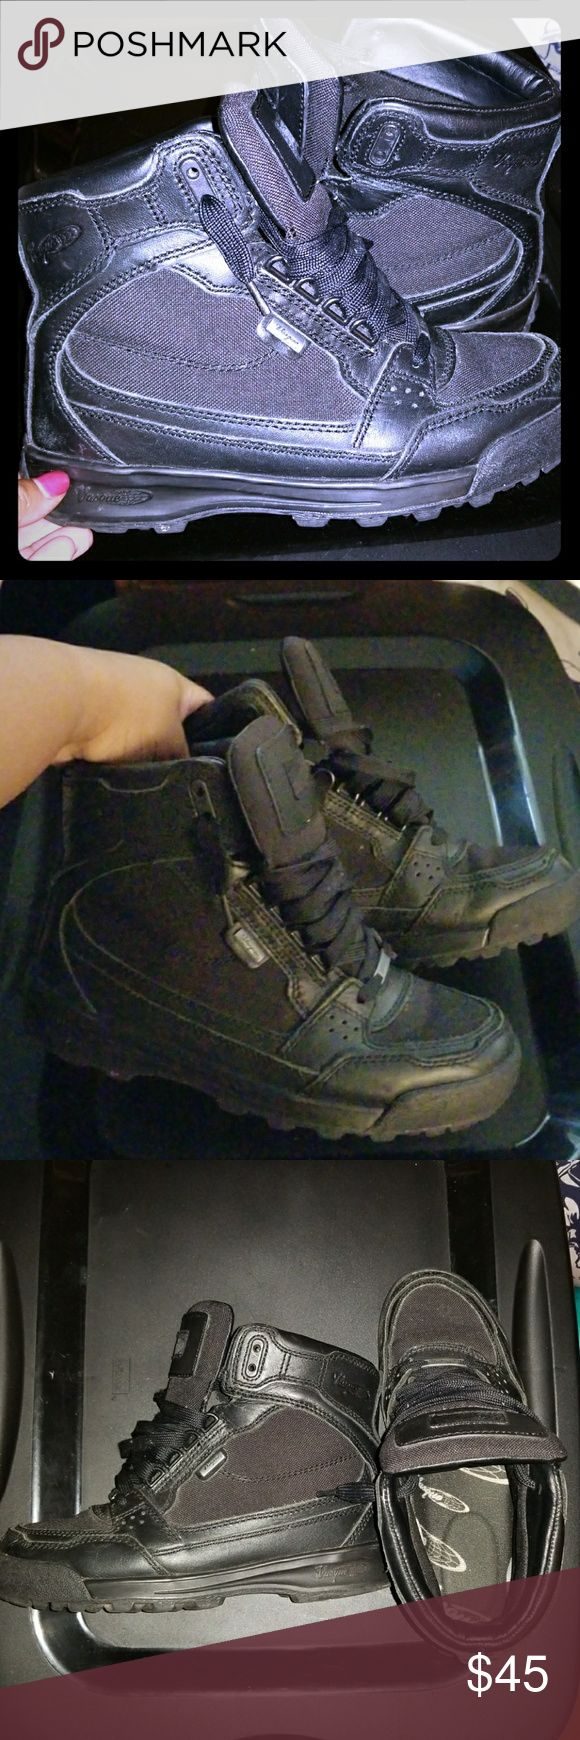 Vasque Gore-Tex Contender Hiking Boots (Boys) All black Vasque Contender Hiking Boots Boys Size 5 1/2   Worn. Good condition. Great for winter, hiking, security work and a variety of other uses. Photos take with and without flash to show true color. Vasque Shoes Boots